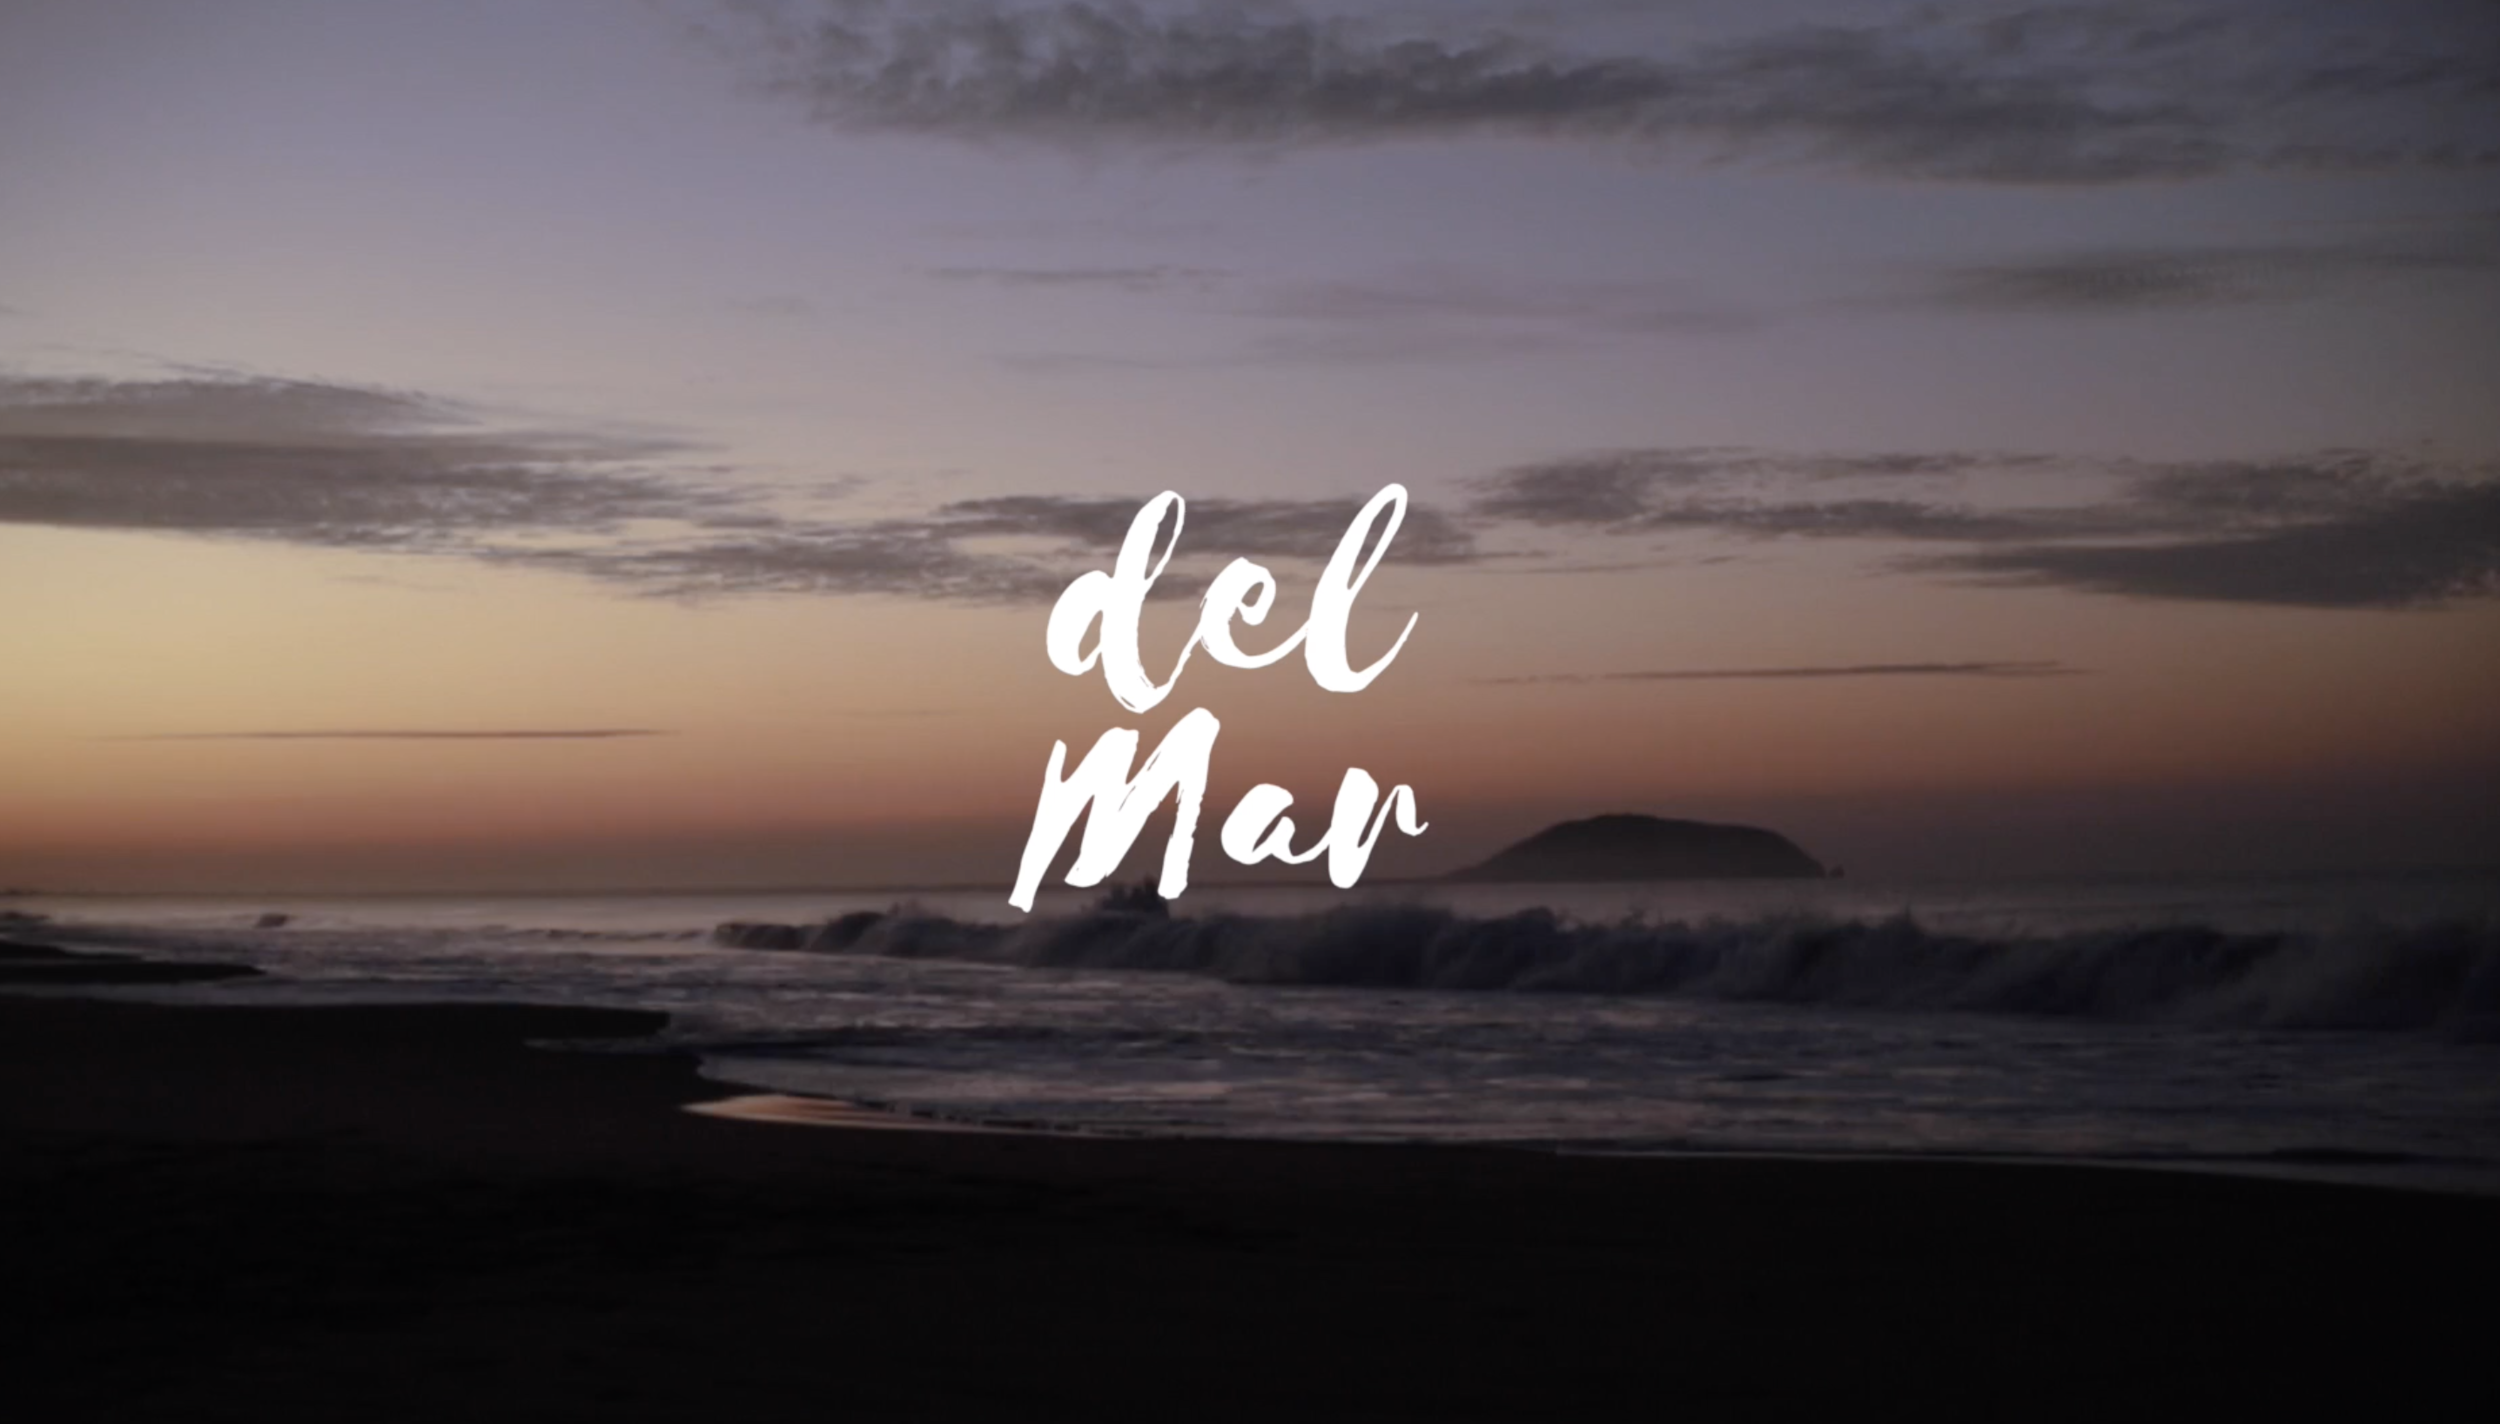 Del Mar Women's Surf Film Festival